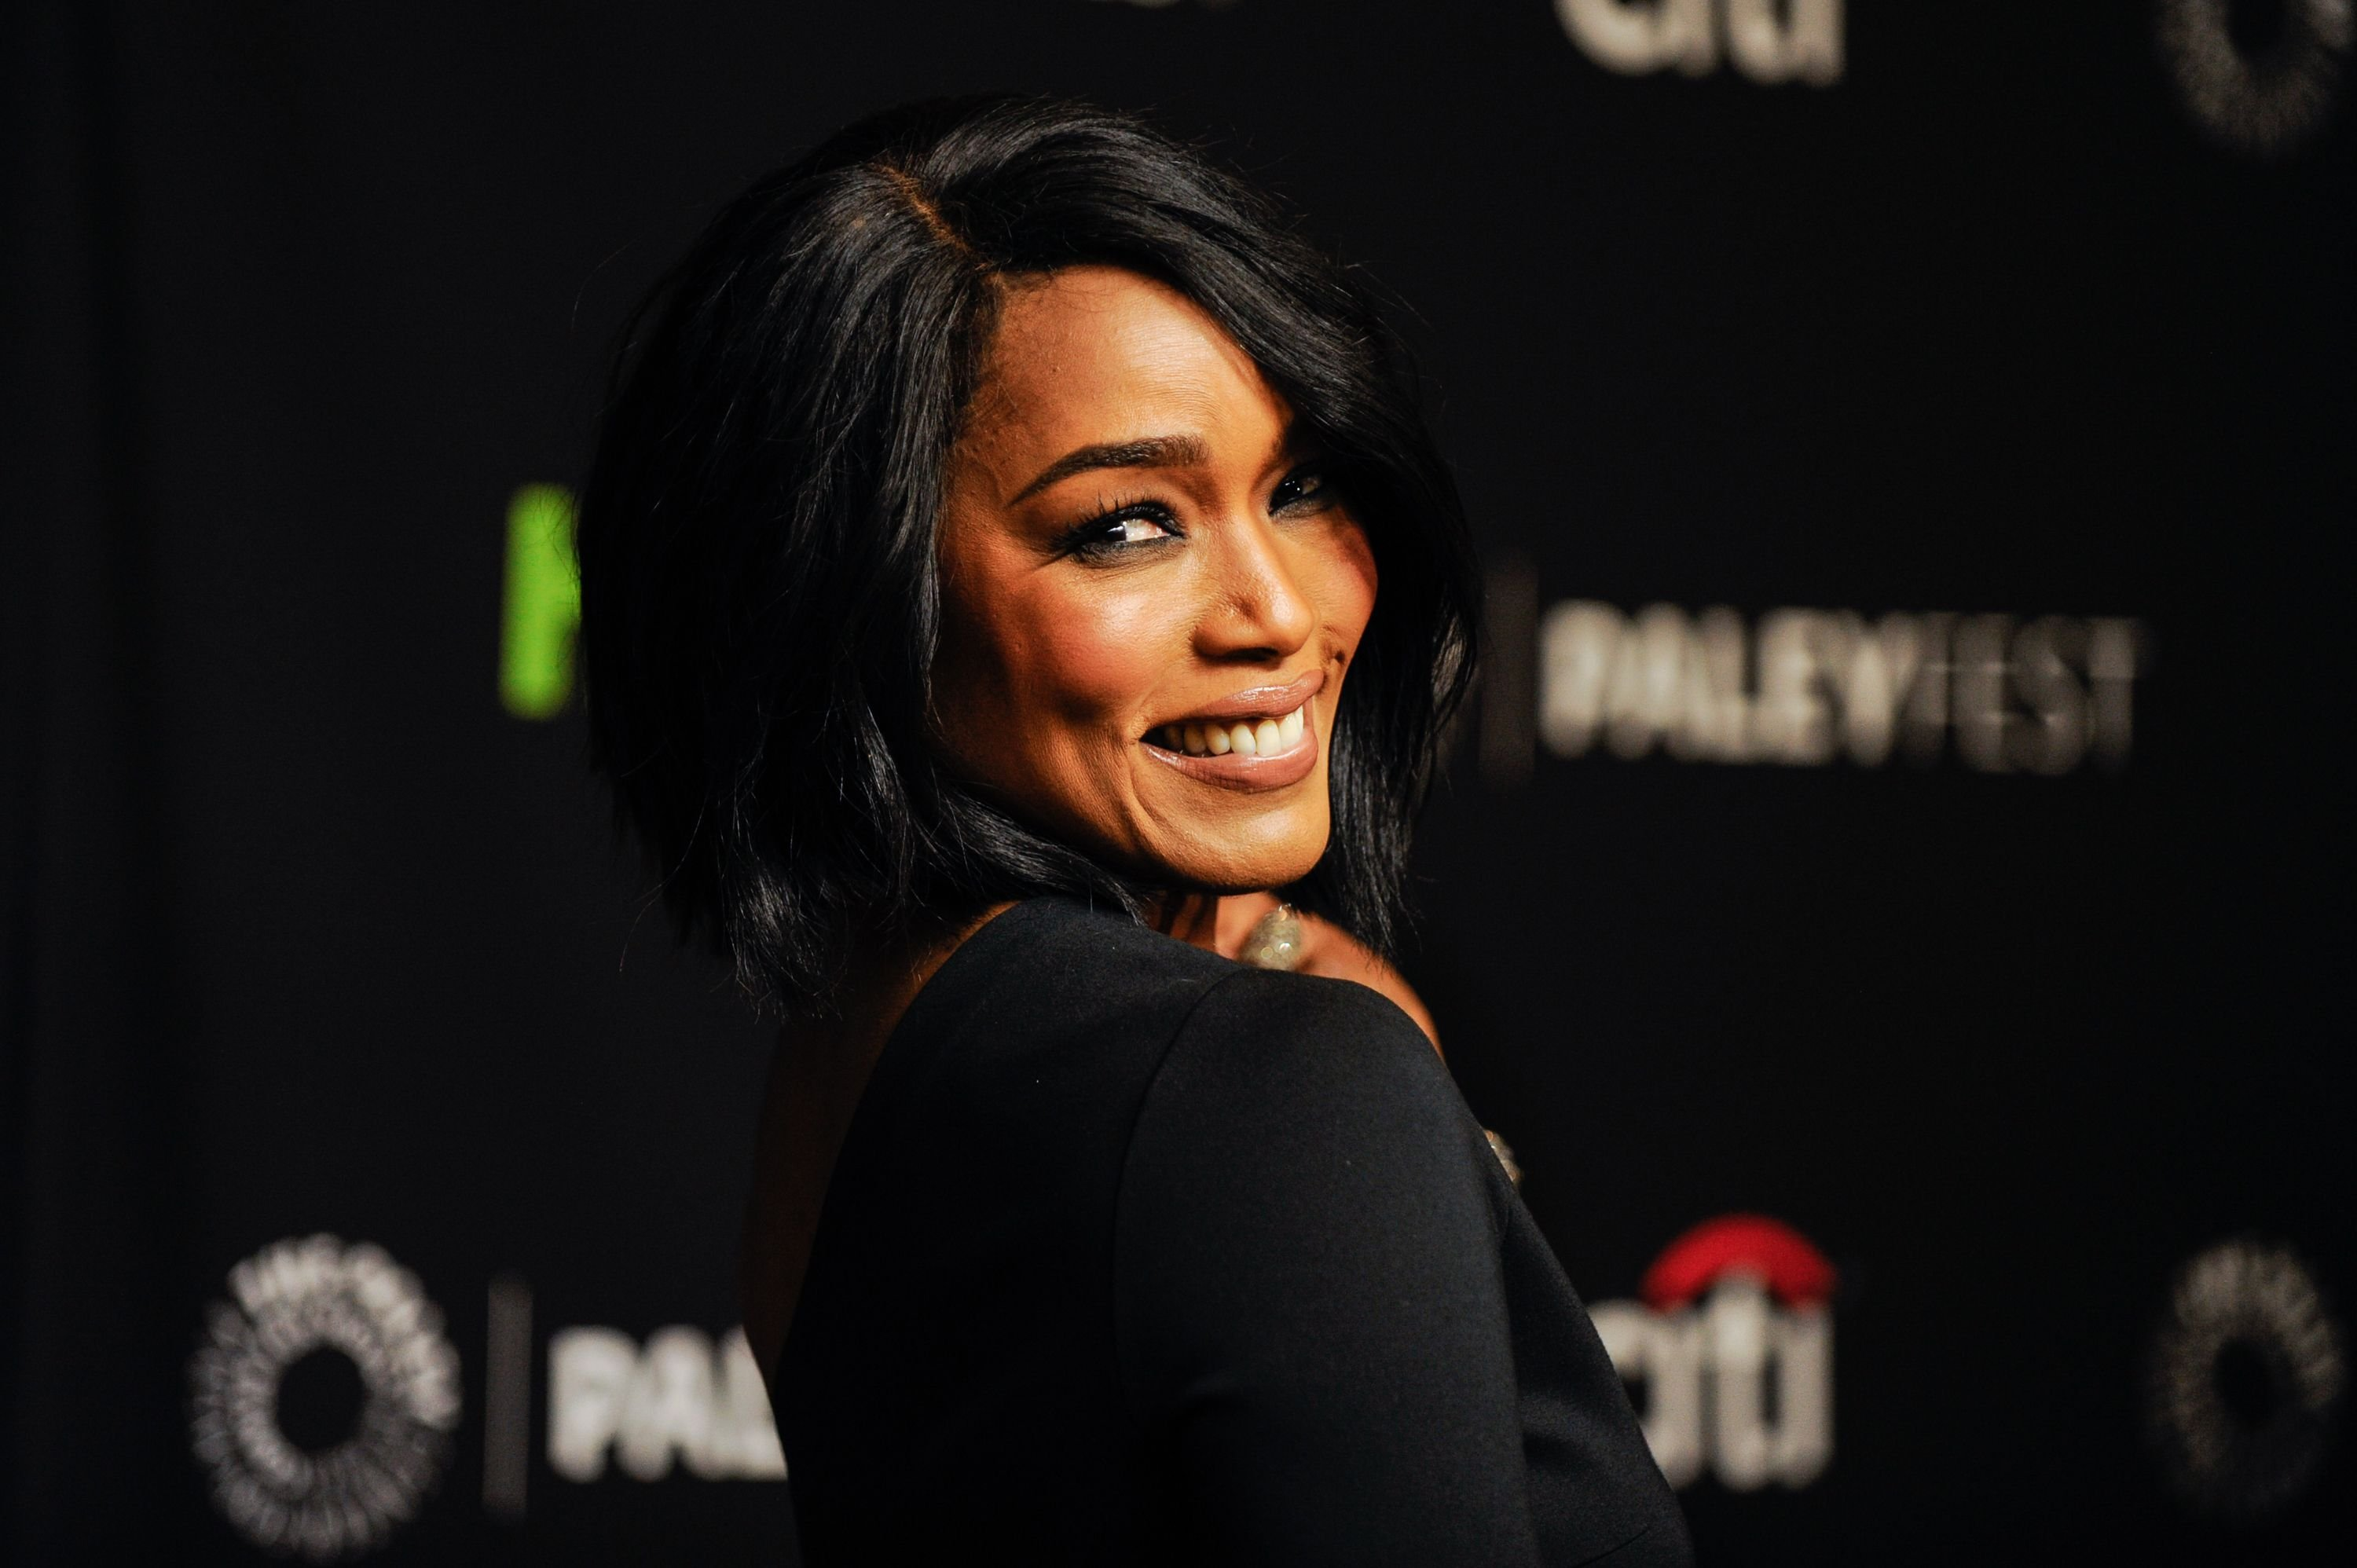 Angela Bassett at The Paley Center For Media's 33rd Annual PaleyFest on March 20, 2016 in Hollywood. | Photo: Getty Images